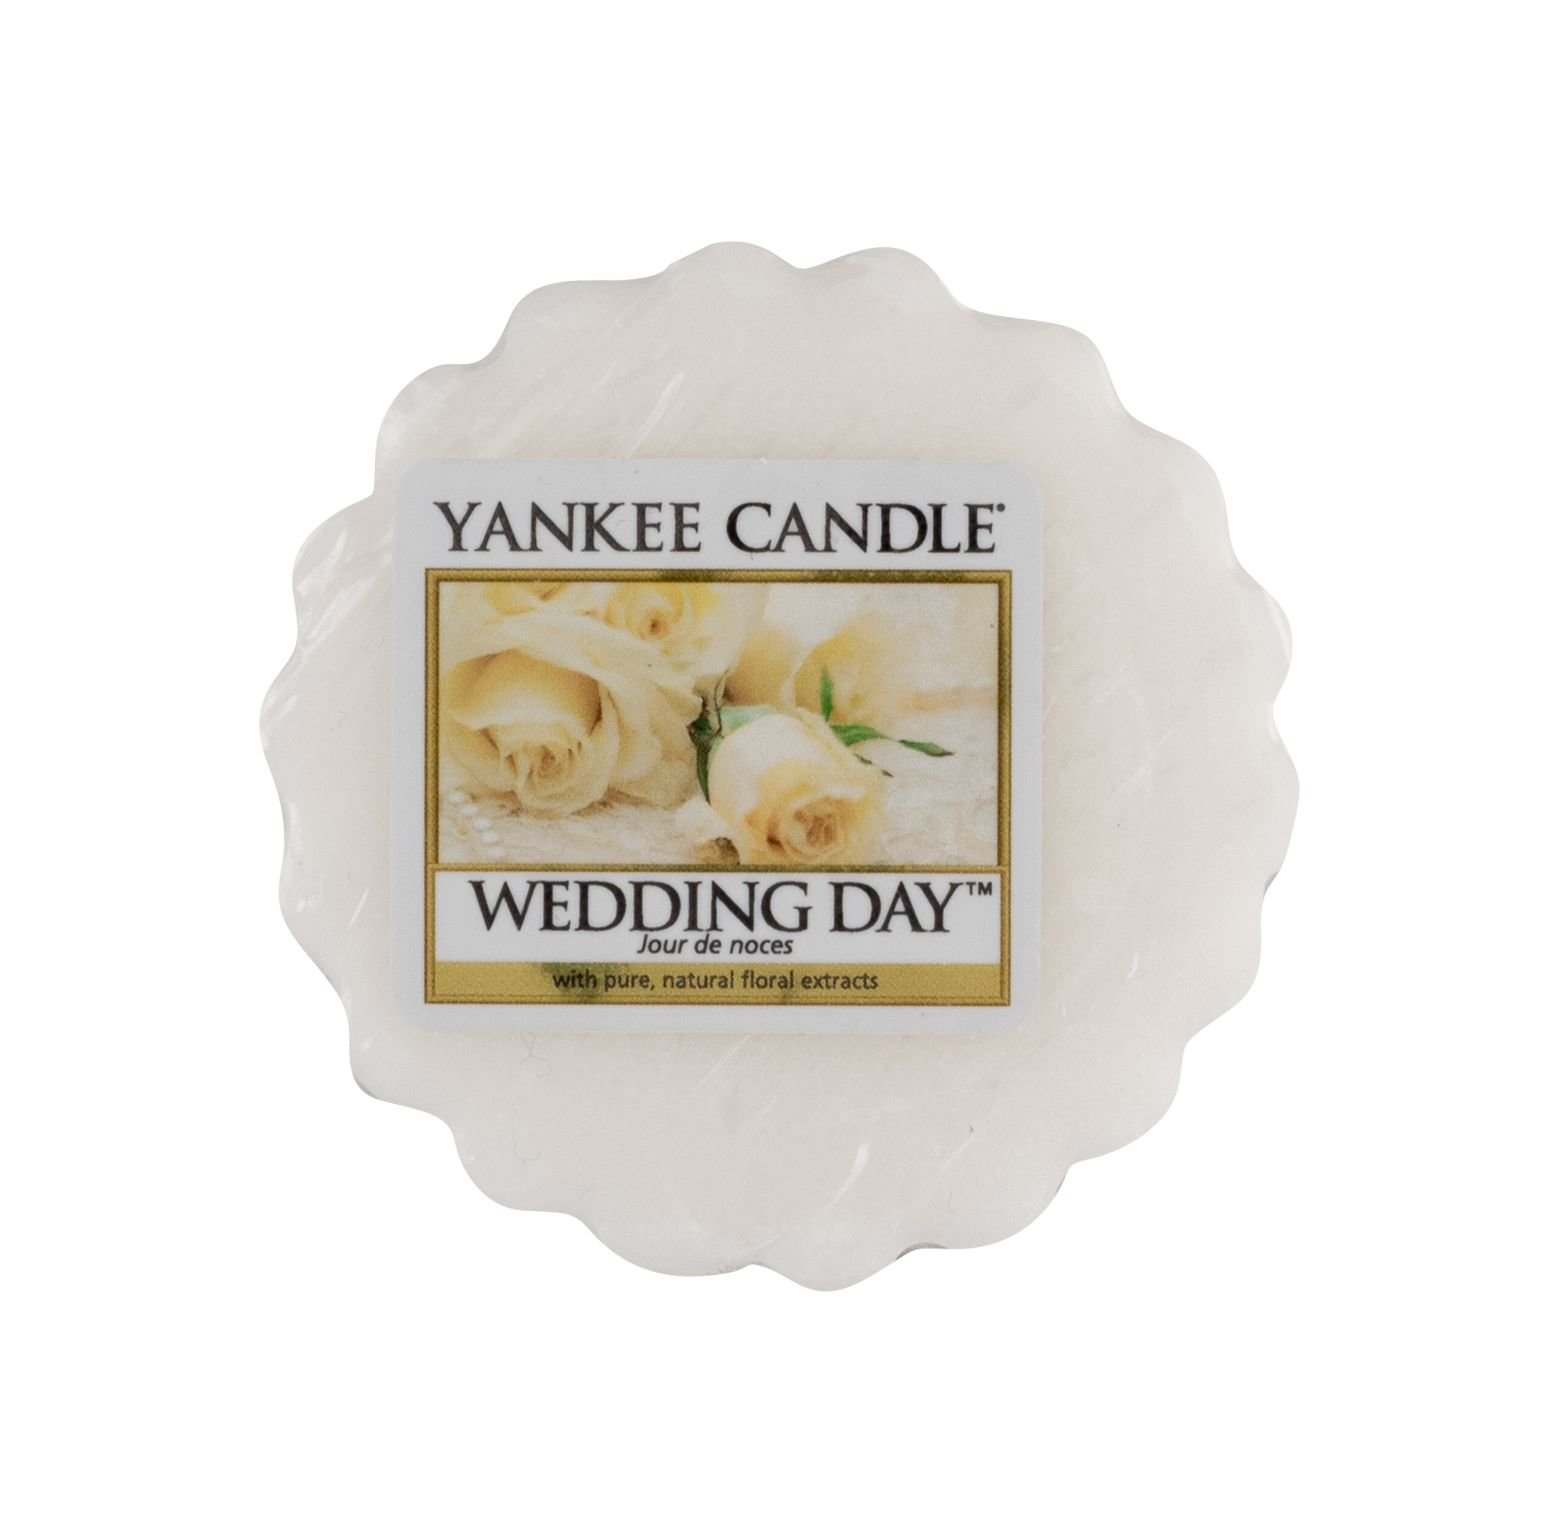 Yankee Candle Wedding Day Scented Candle 22ml